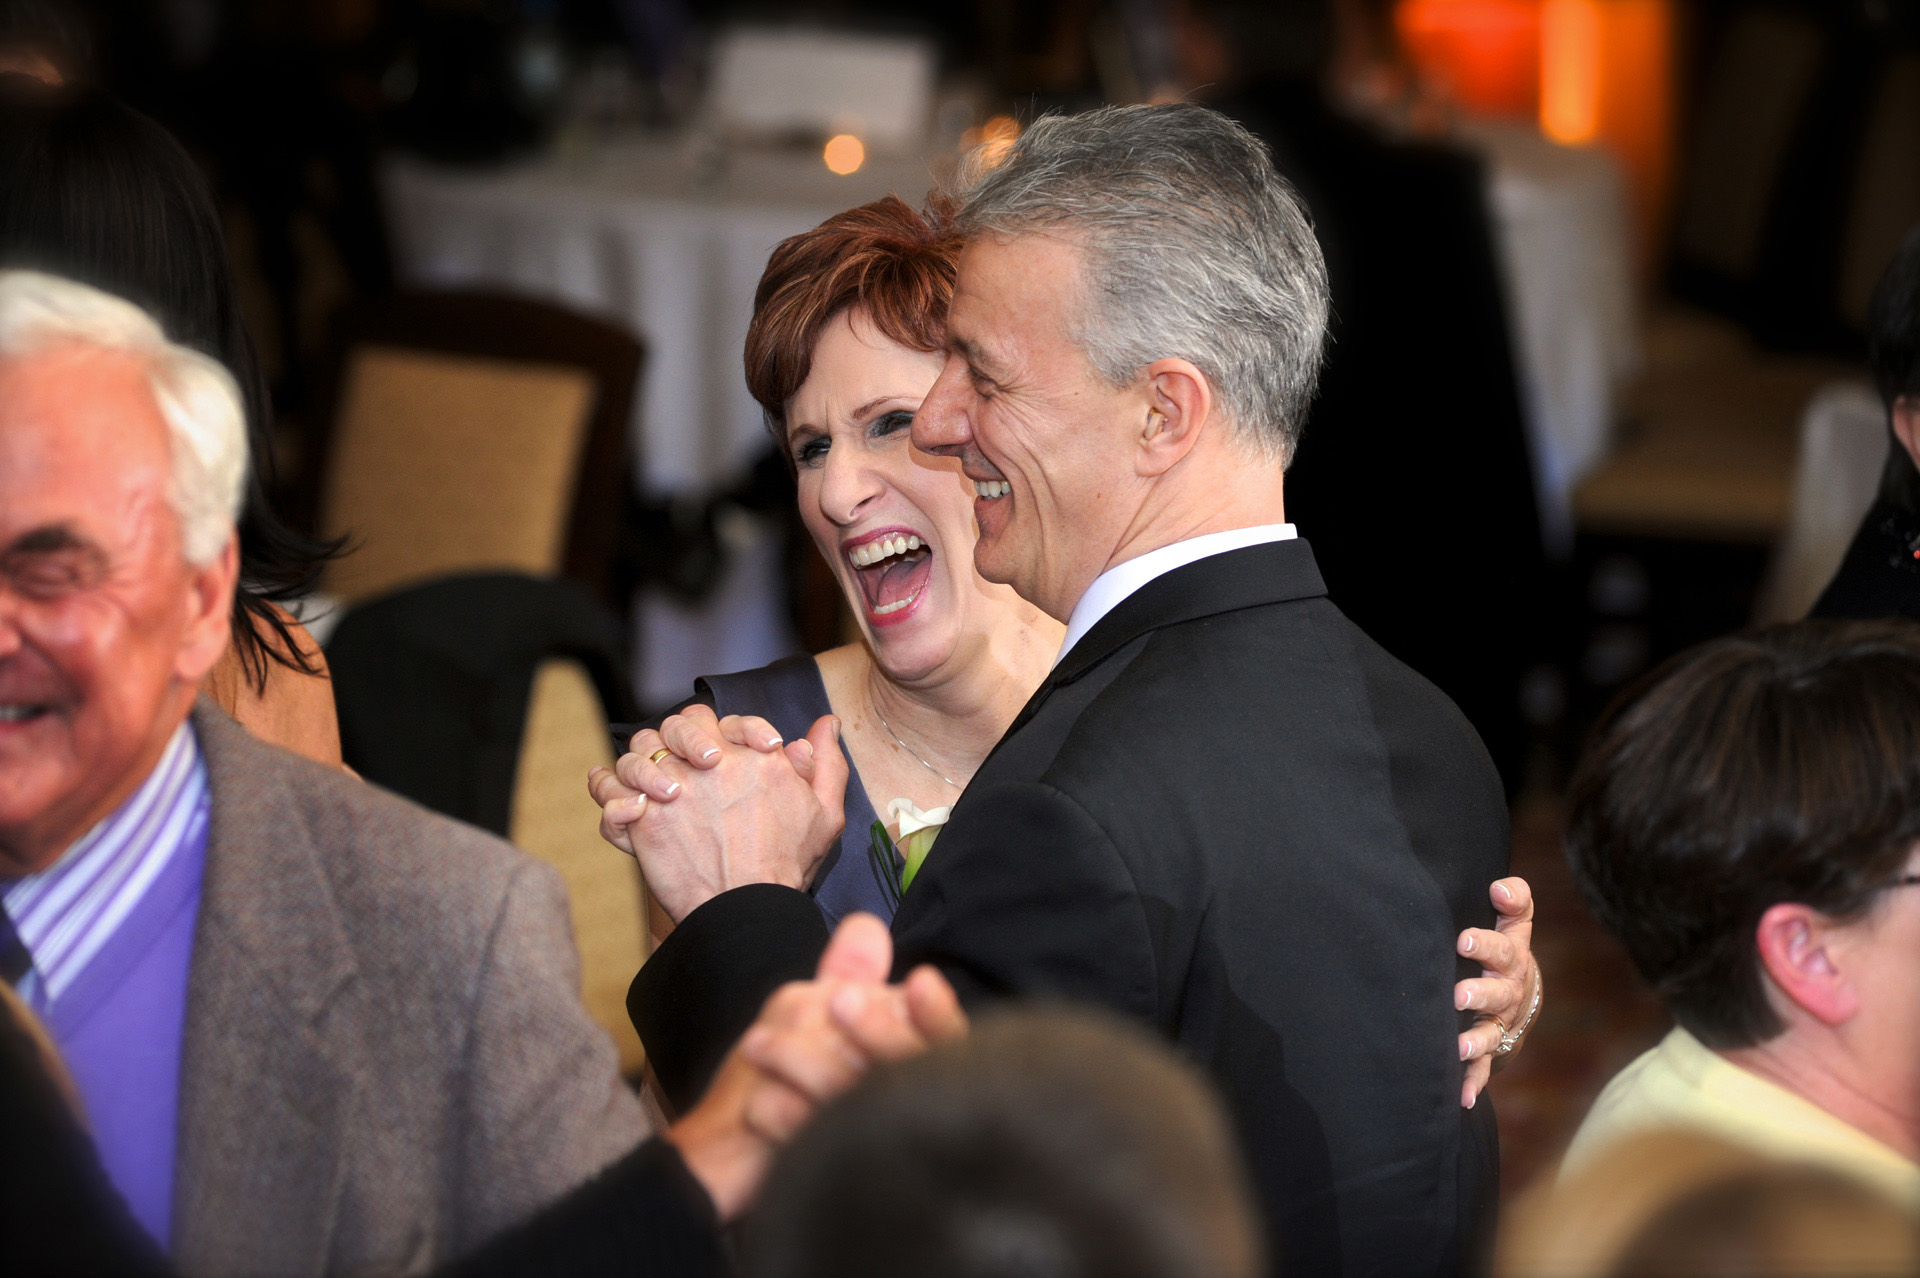 A windy winter wedding in Michigan features the groom's parents dancing during their son's wedding reception at the DAC or the Detroit Athletic Club.